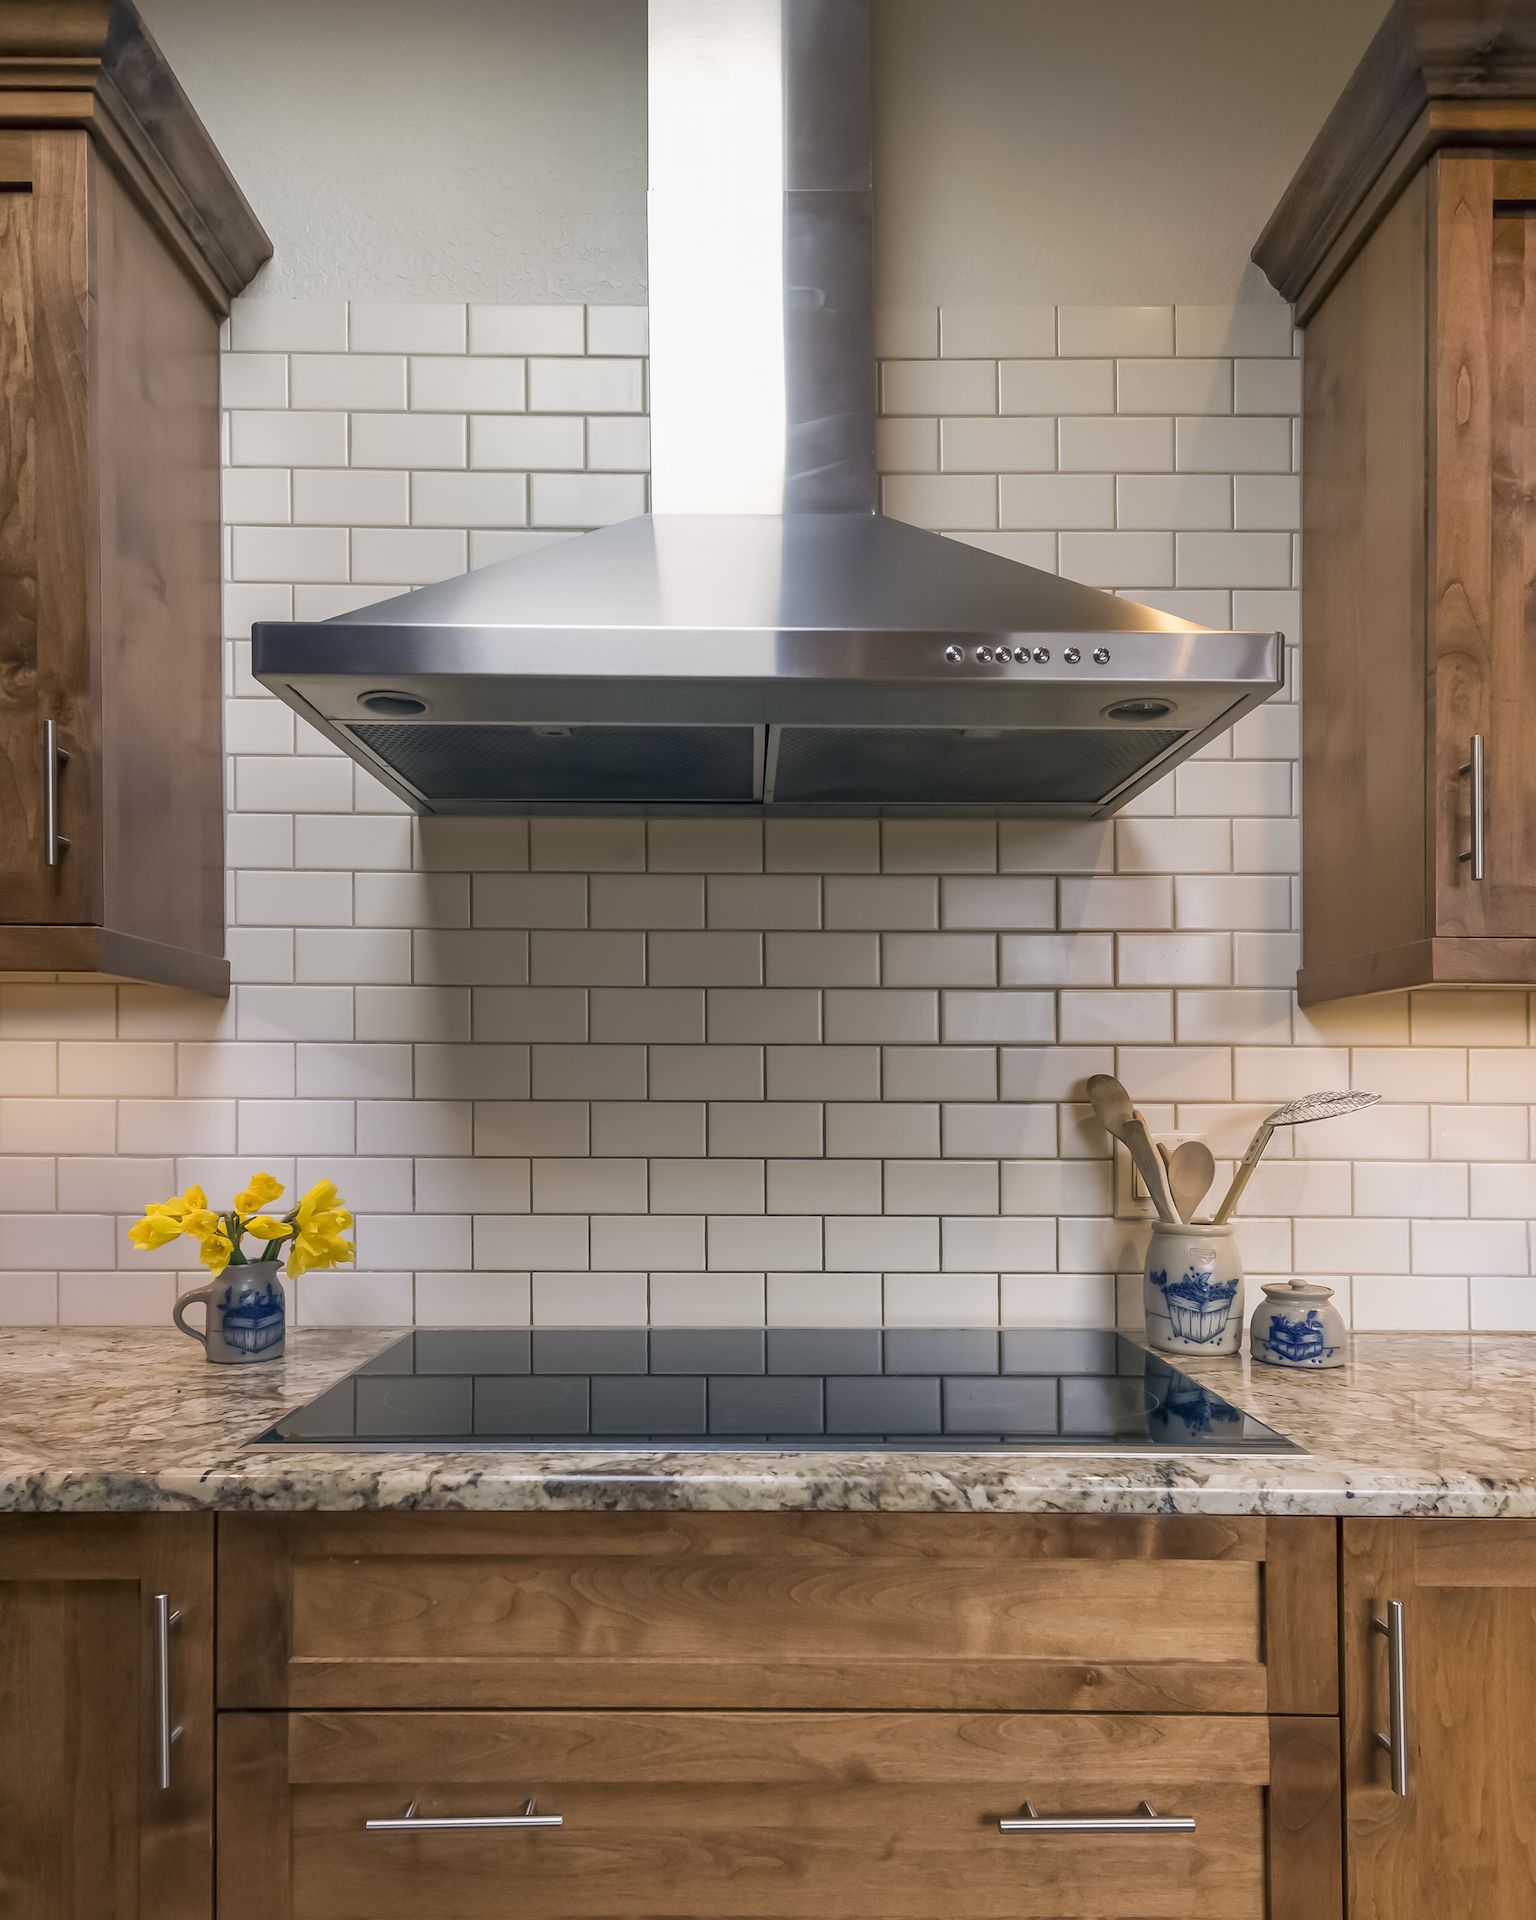 Simple, cream subway tile, a sleek induction stove and stainless steel hood create a simple backdrop for all the different wood species in the kitchen.